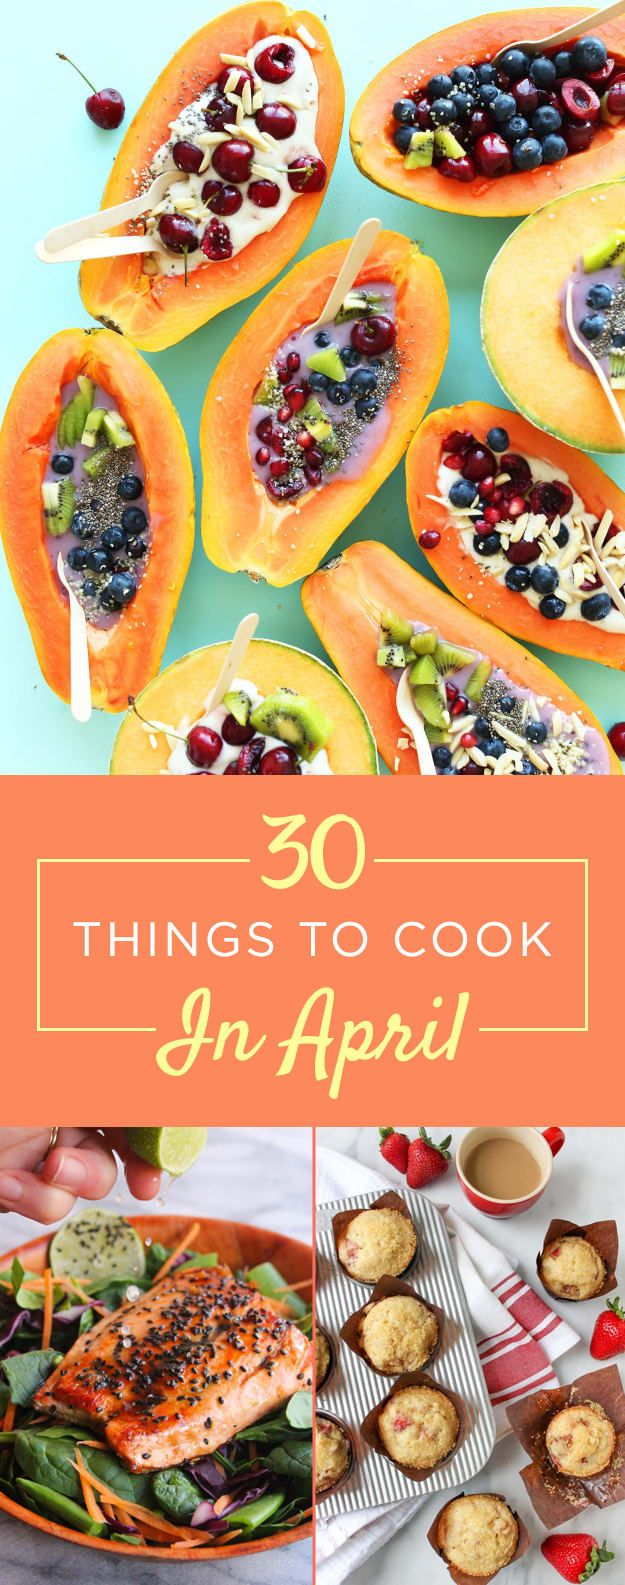 Tasty Tuesdays with Paradigm Fresh Inc.  Here in Colorado, it may not feel like it yet, but Spring is here! Spring brings a whole new menu of choices that come into season. Here are 30 Delicious Things To Cook In April that you're sure to love!  #ProduceToAmaze #LifeIsGood #ParadigmFreshMarket  https://www.buzzfeed.com/marietelling/30-delicious-things-to-cook-in-april?utm_term=.giJVYaKNJ